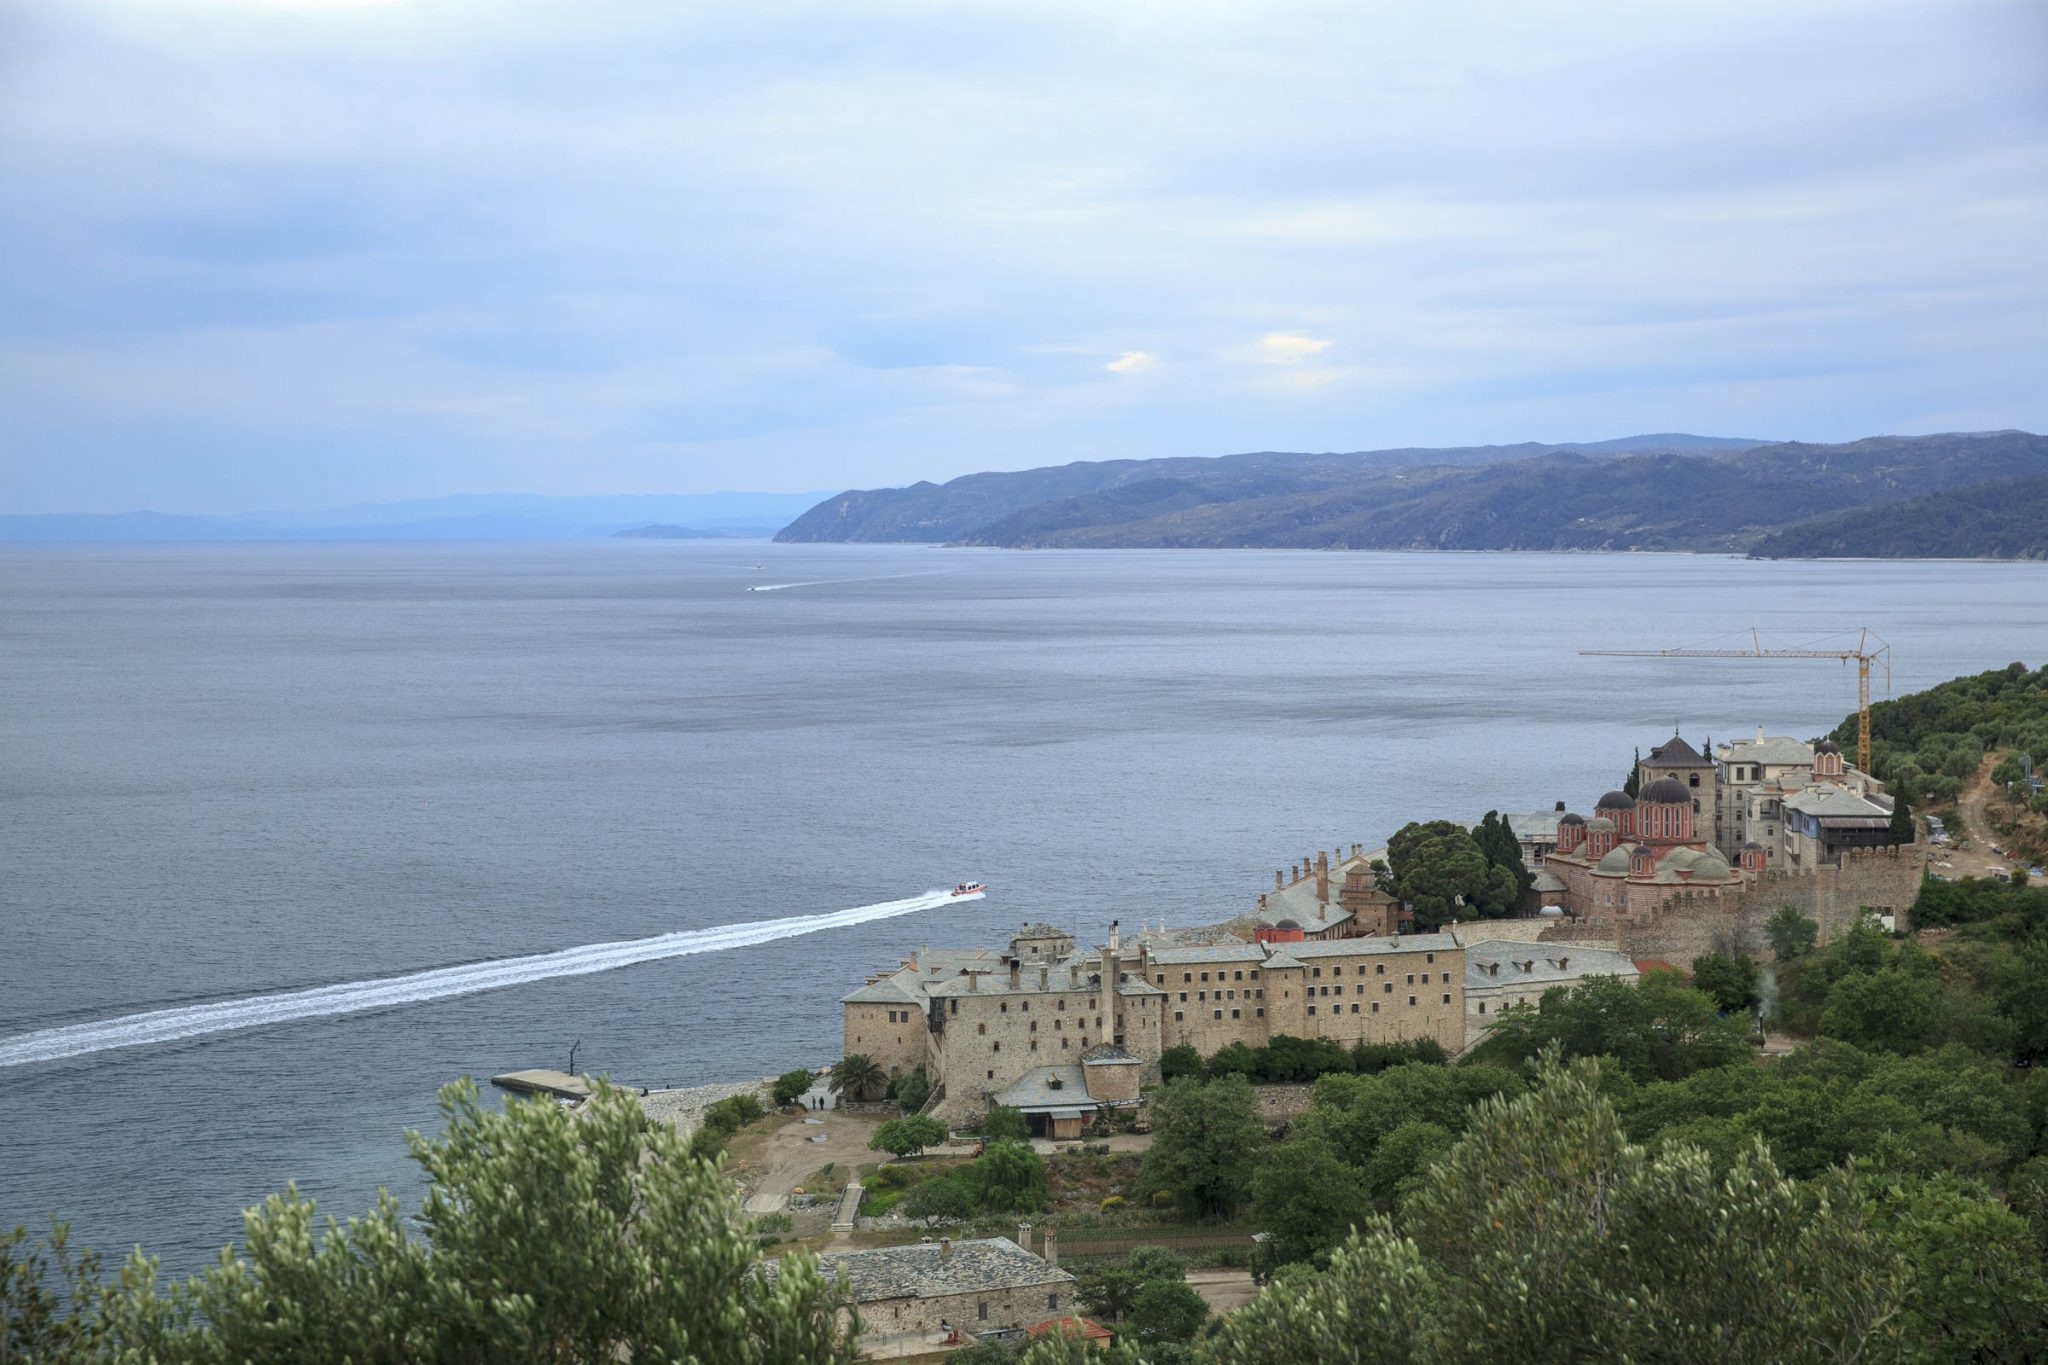 The Holy Monastery of Xenofontos, Mount Athos